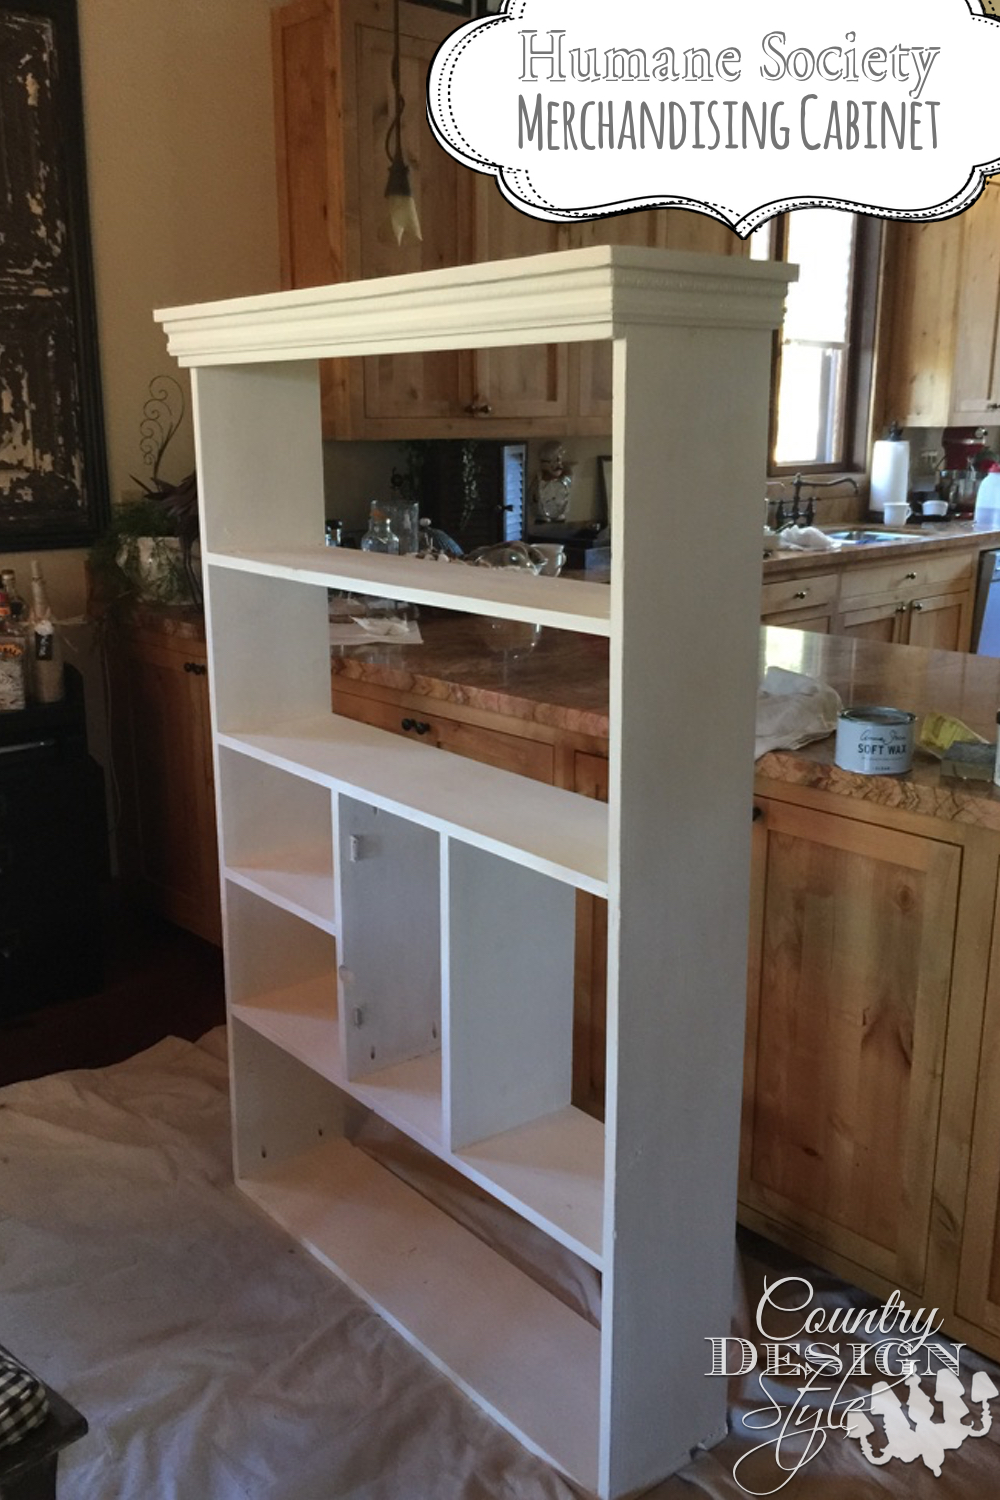 Making a cabinet for our local Humane Society to display merchandise such as t-shirts and caps for sale.  Helping the puppies and kitties is my best way...DIY!  Country Design Style